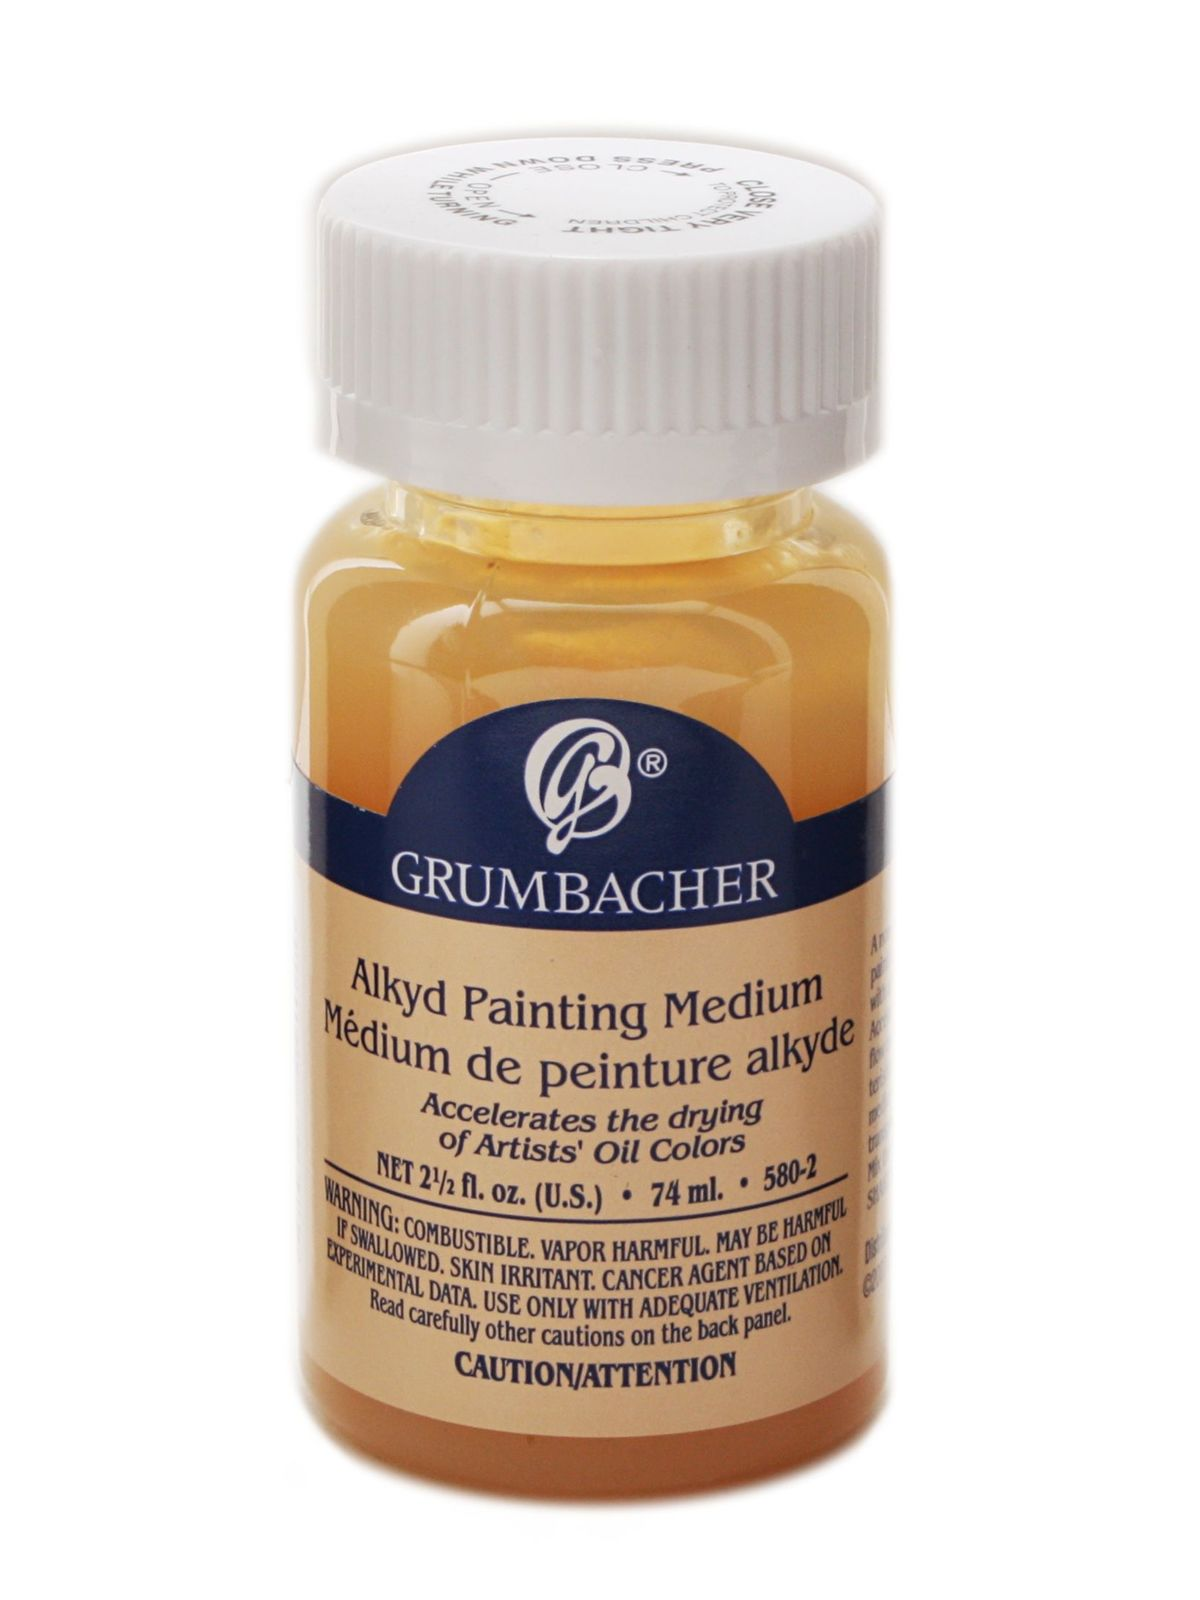 Grumbacher alkyd painting medium for What are alkyd paints